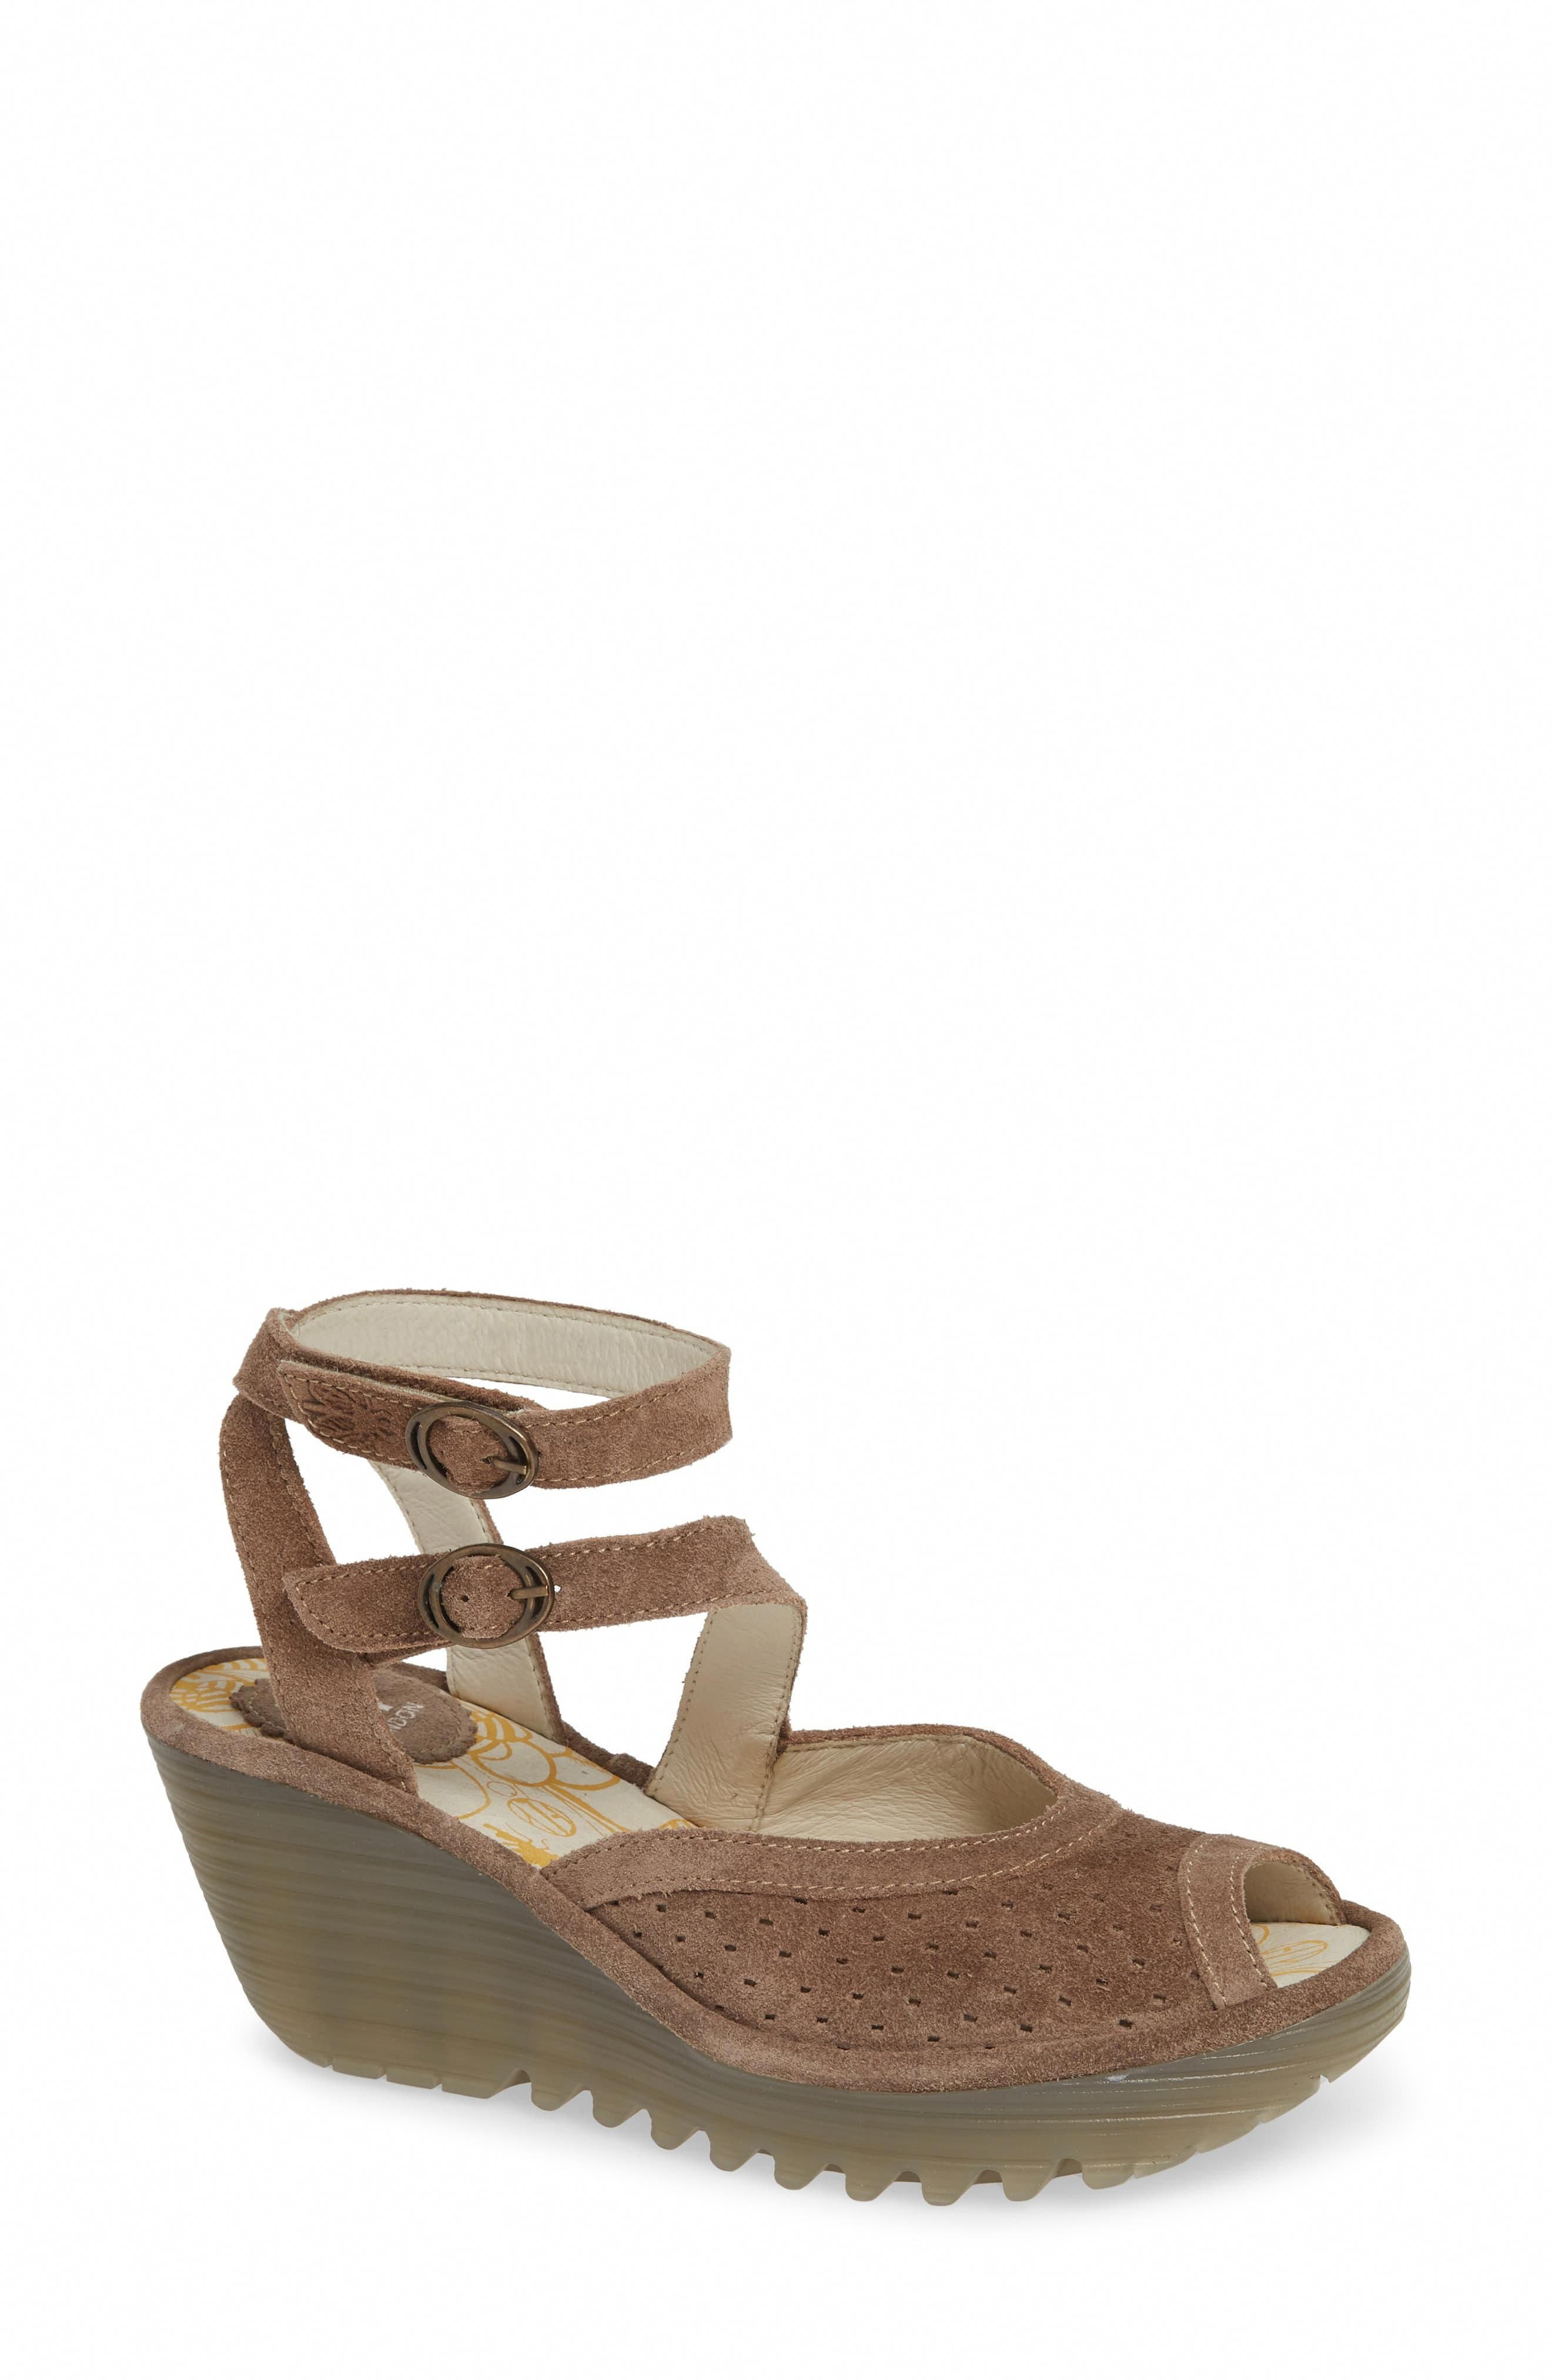 Wedge sandals, Fly london